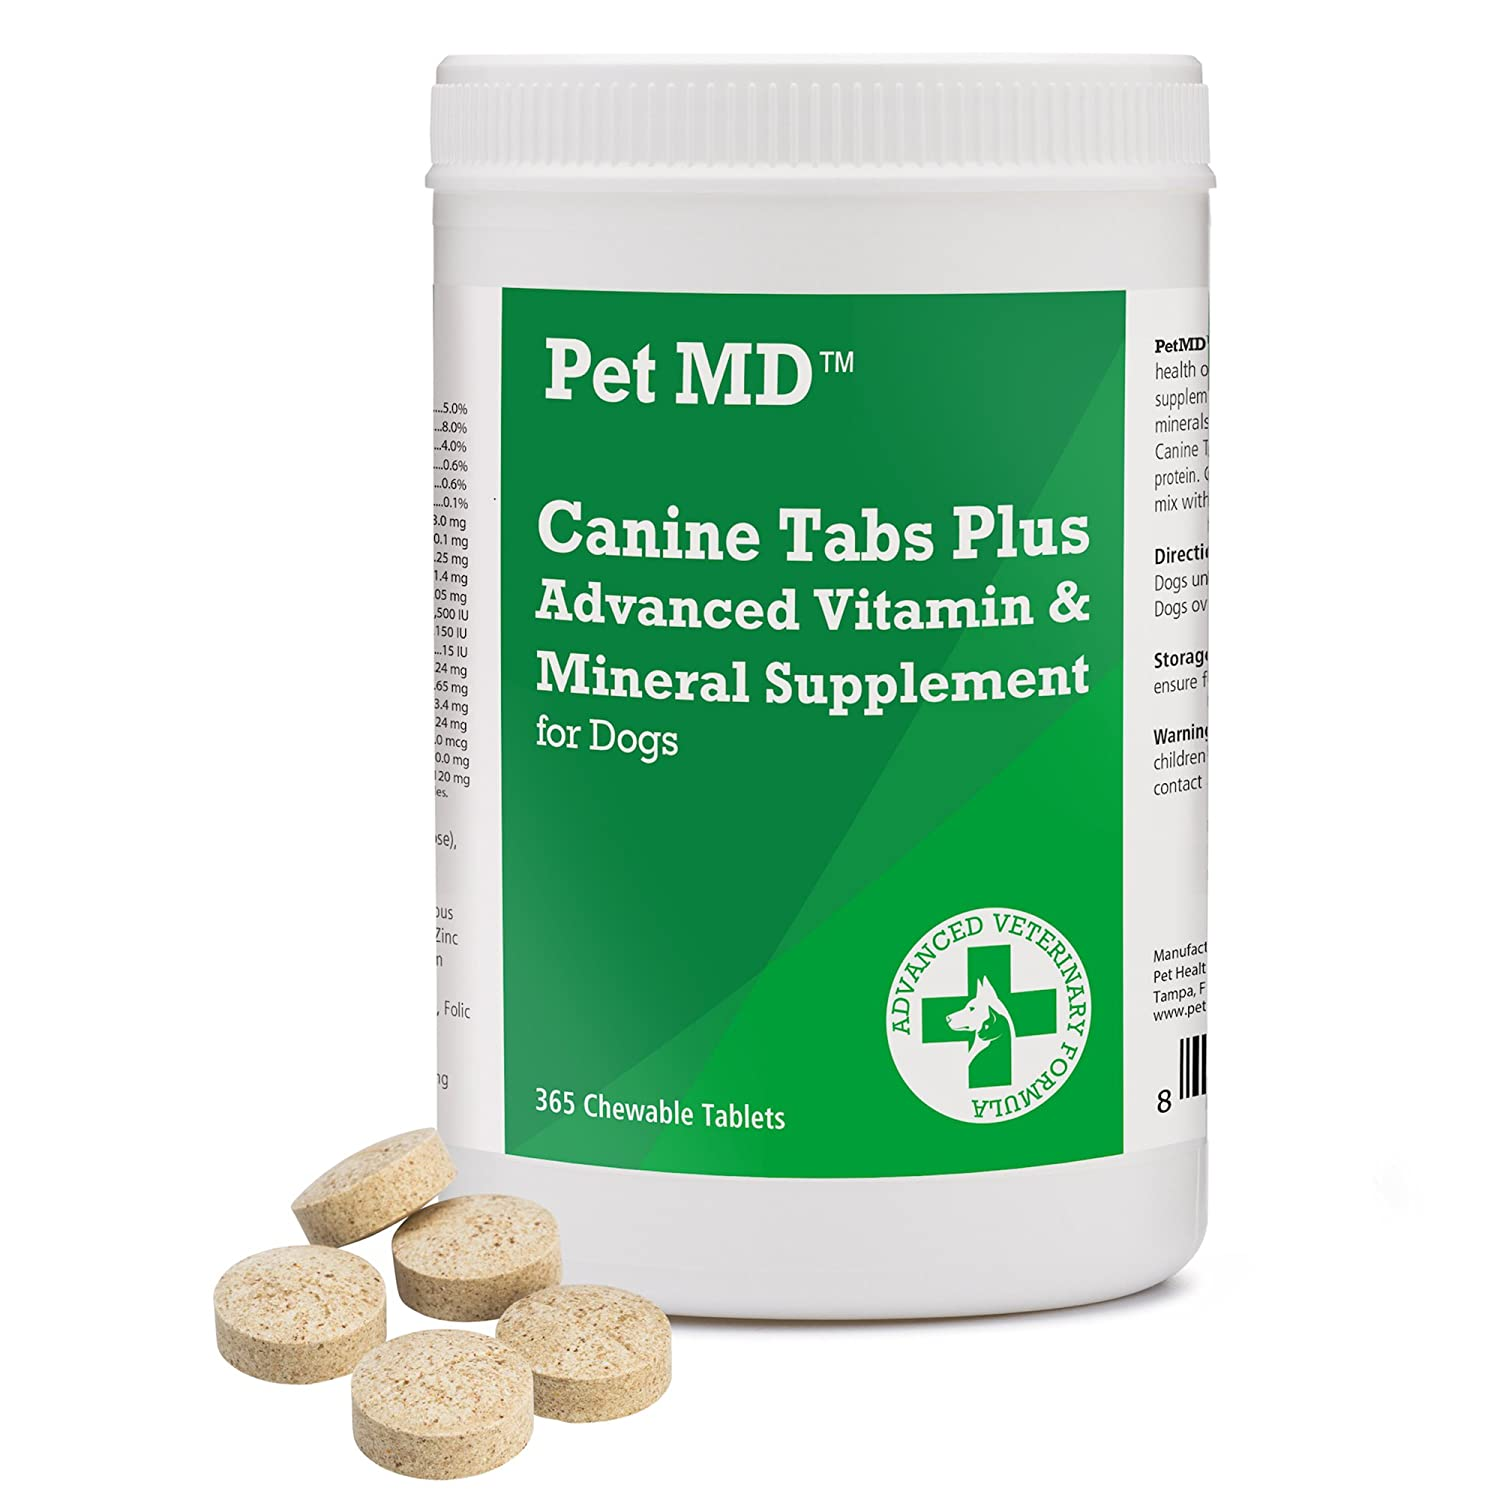 Pet MD - Canine Tabs Plus 365 Count - Advanced Multivitamins for Dogs - Natural Daily Vitamin and Mineral Nutritional Supplement - Liver Flavored Chewable Tablets